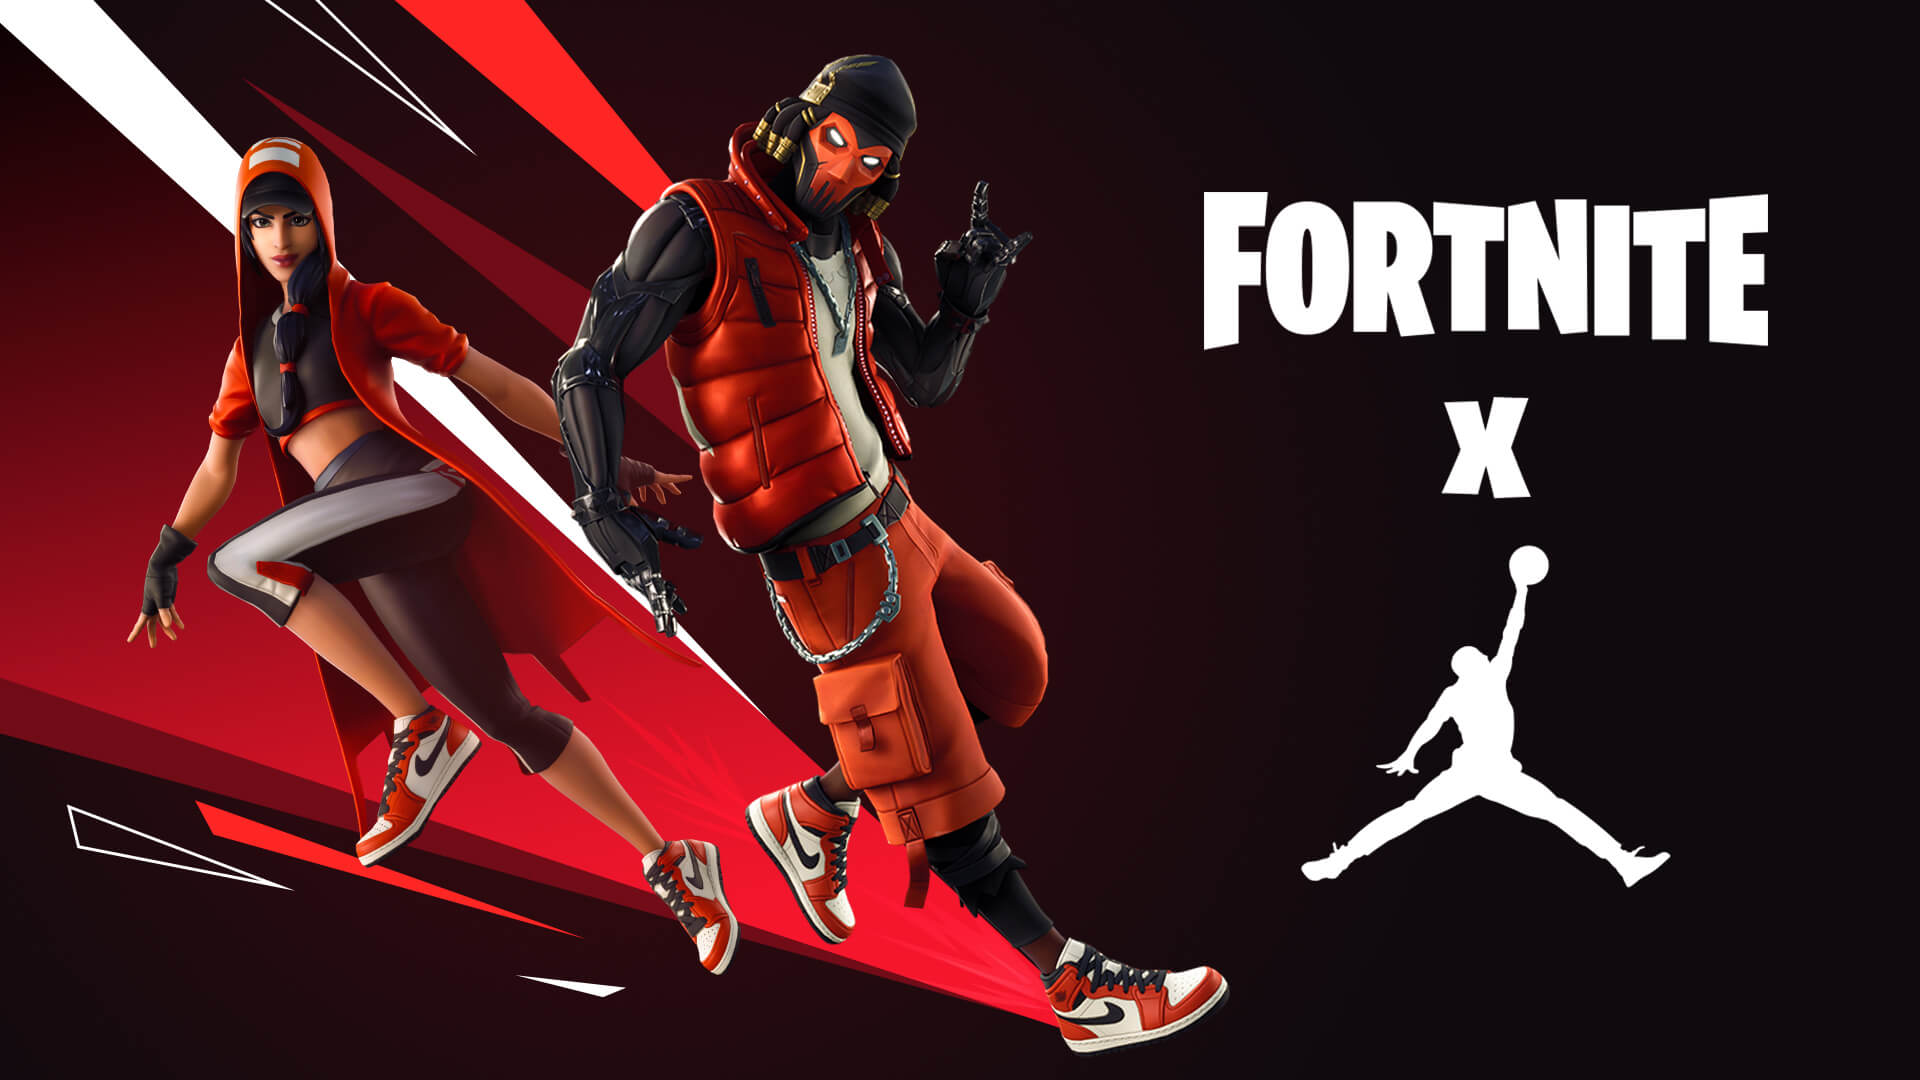 nikefortnite